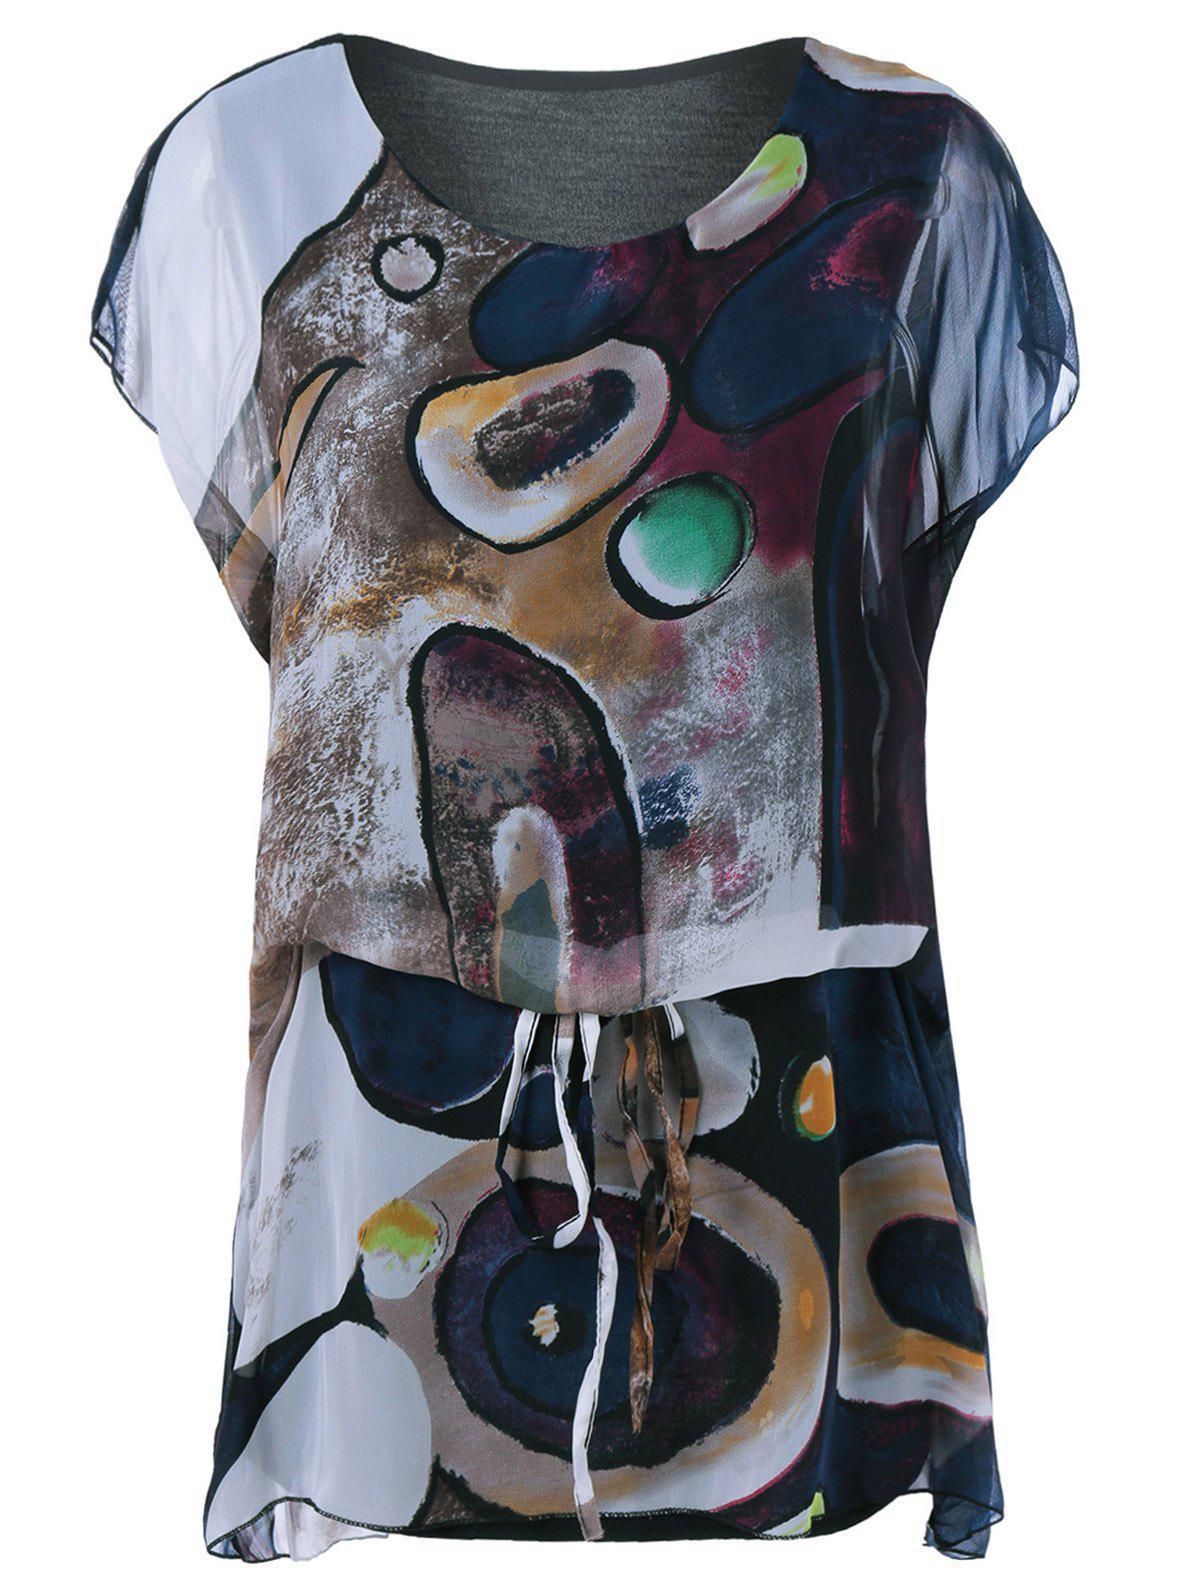 Cap Sleeve Loose-Fitting Print T-Shirt - COLORMIX ONE SIZE